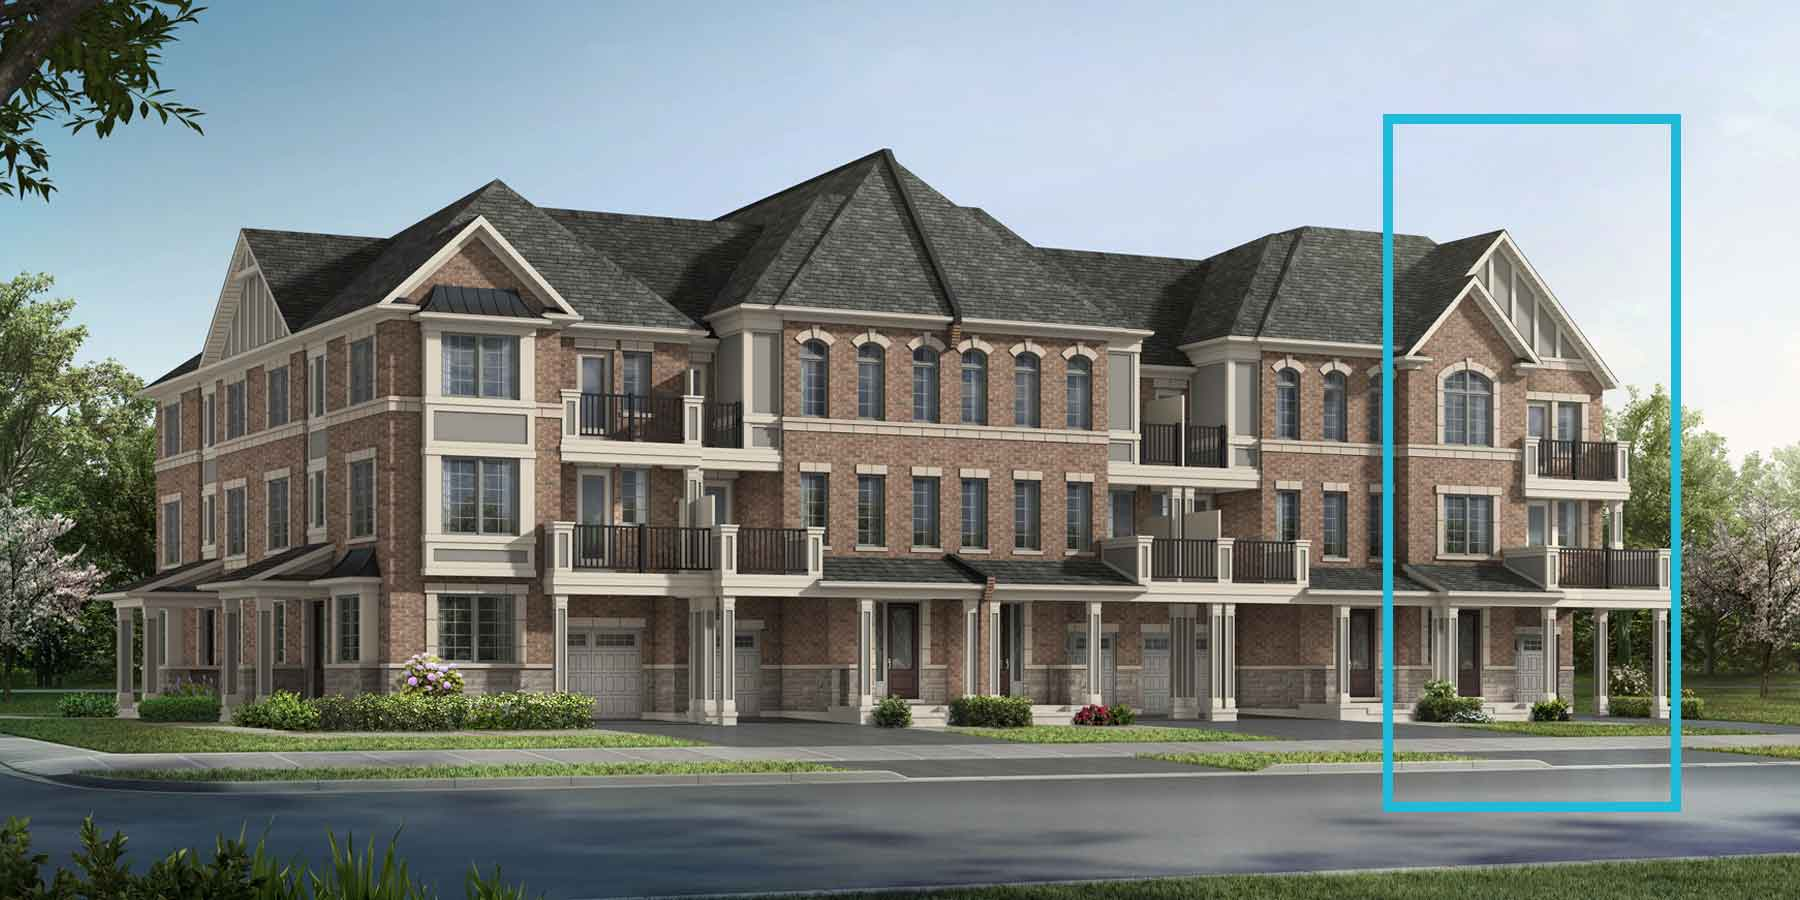 Laguna End Plan TownHomes at Springwater in Markham Ontario by Mattamy Homes